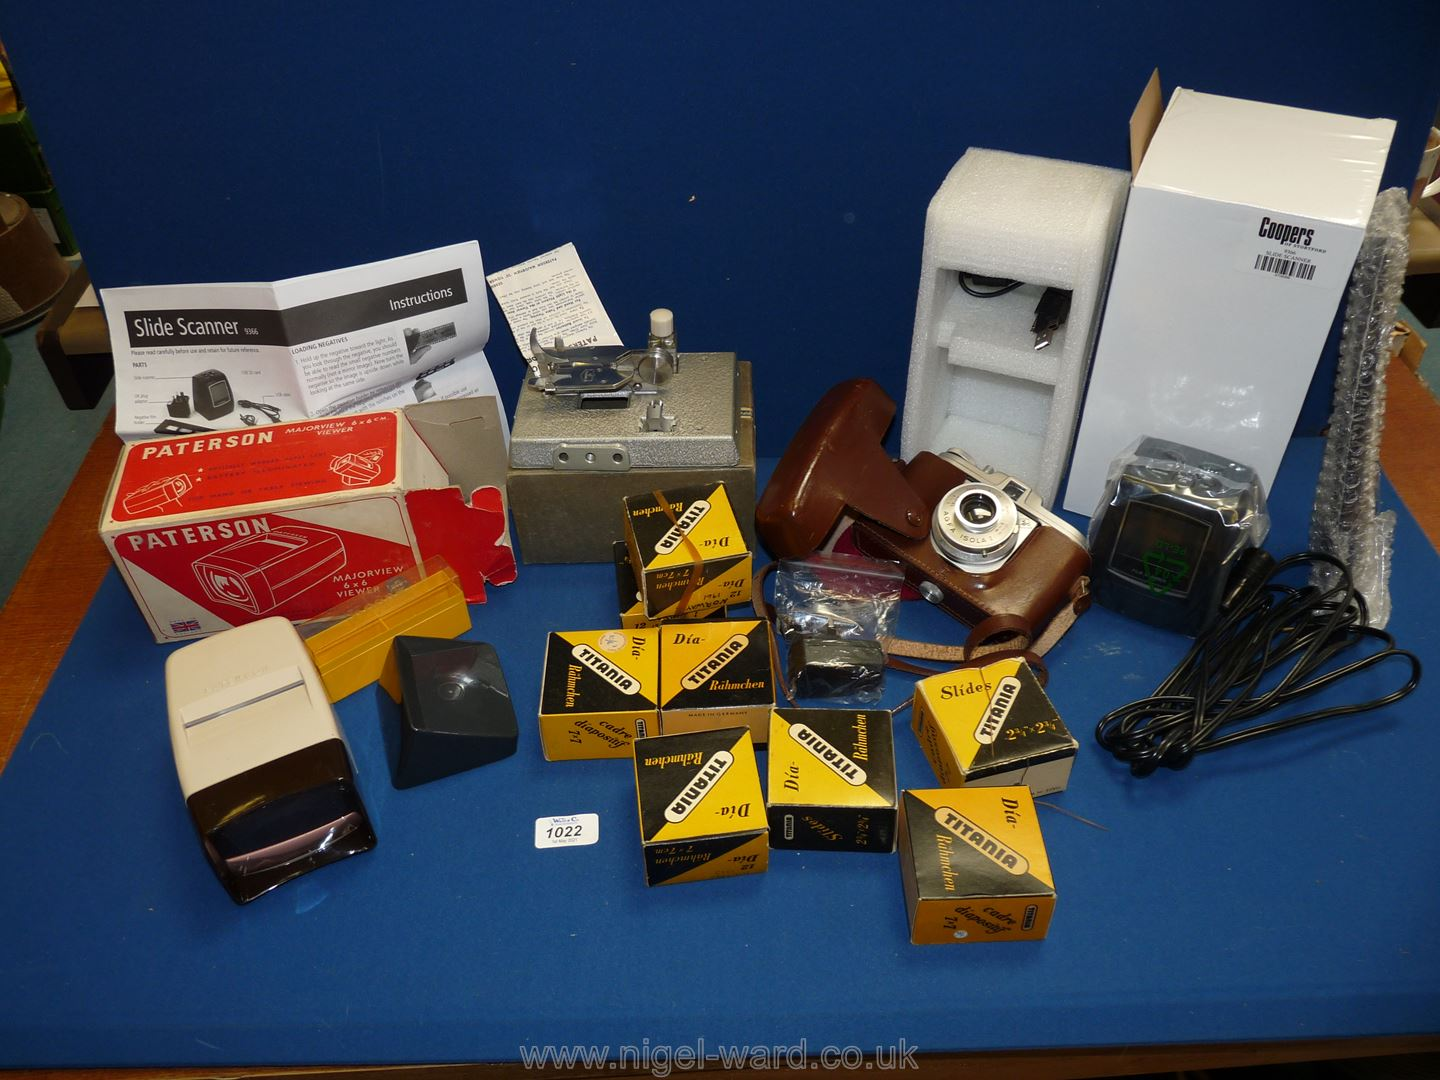 A quantity of miscellanea including a Bell and Howell 604 film slicer, an Agfa Isola 1 film camera,